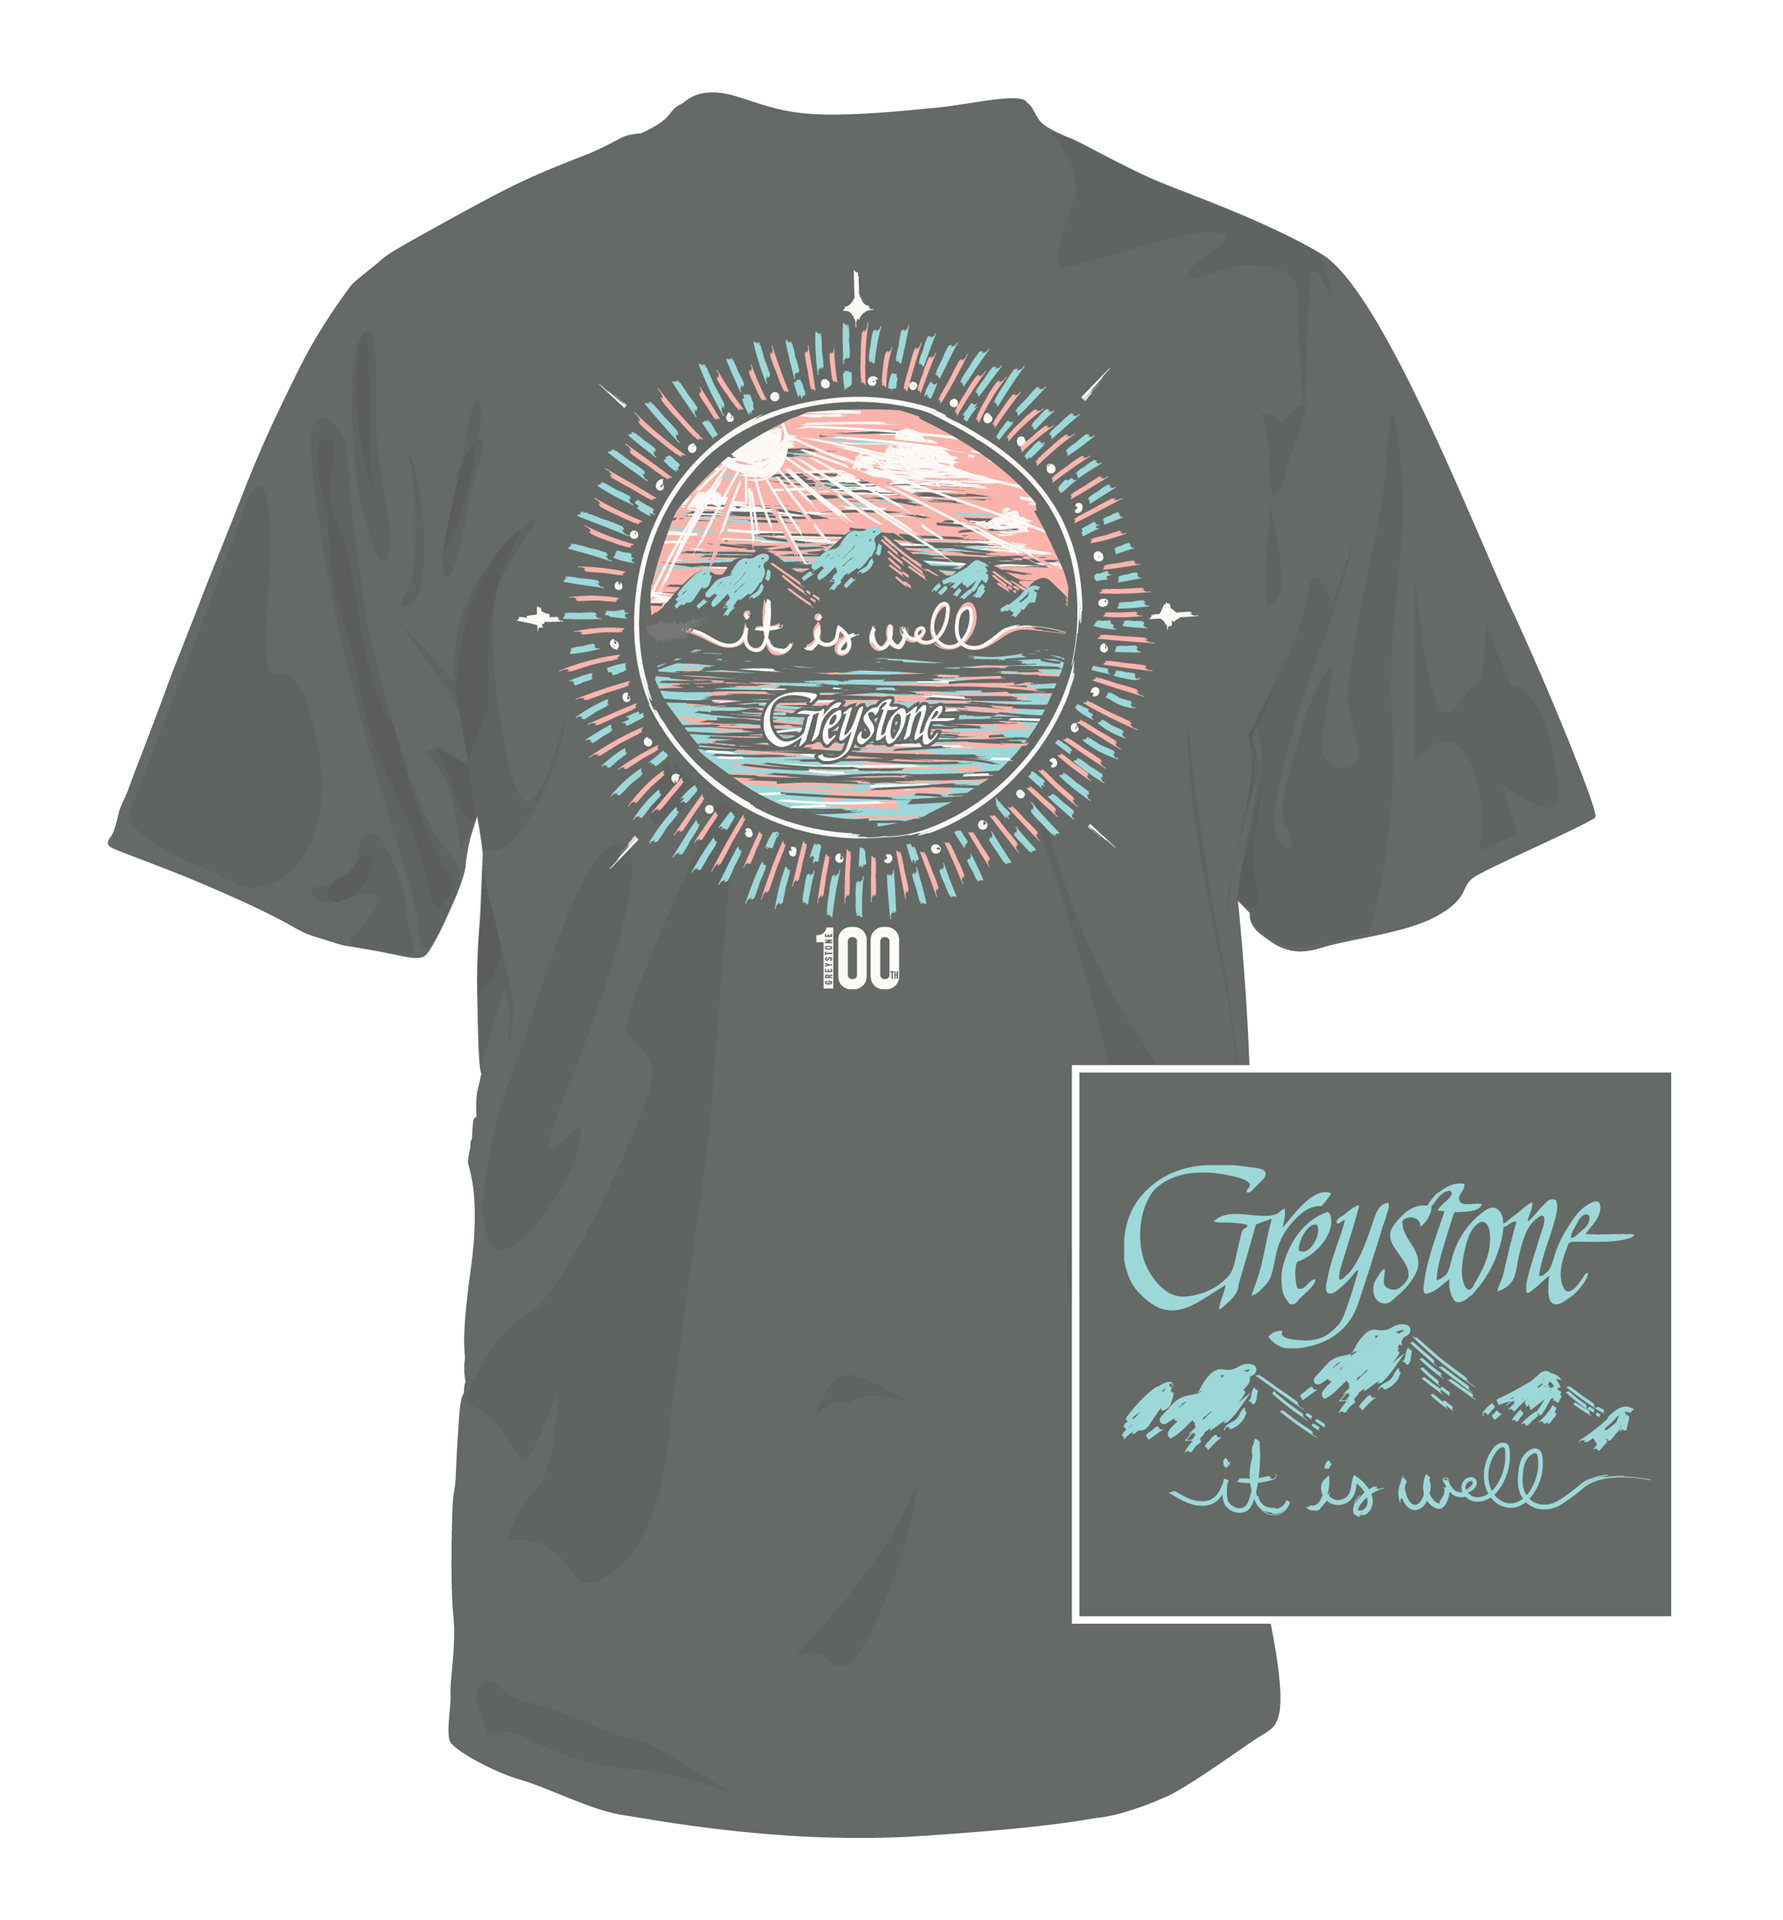 Picture of It Is Well T-Shirt, Grey, Short Sleeve, 100th yr